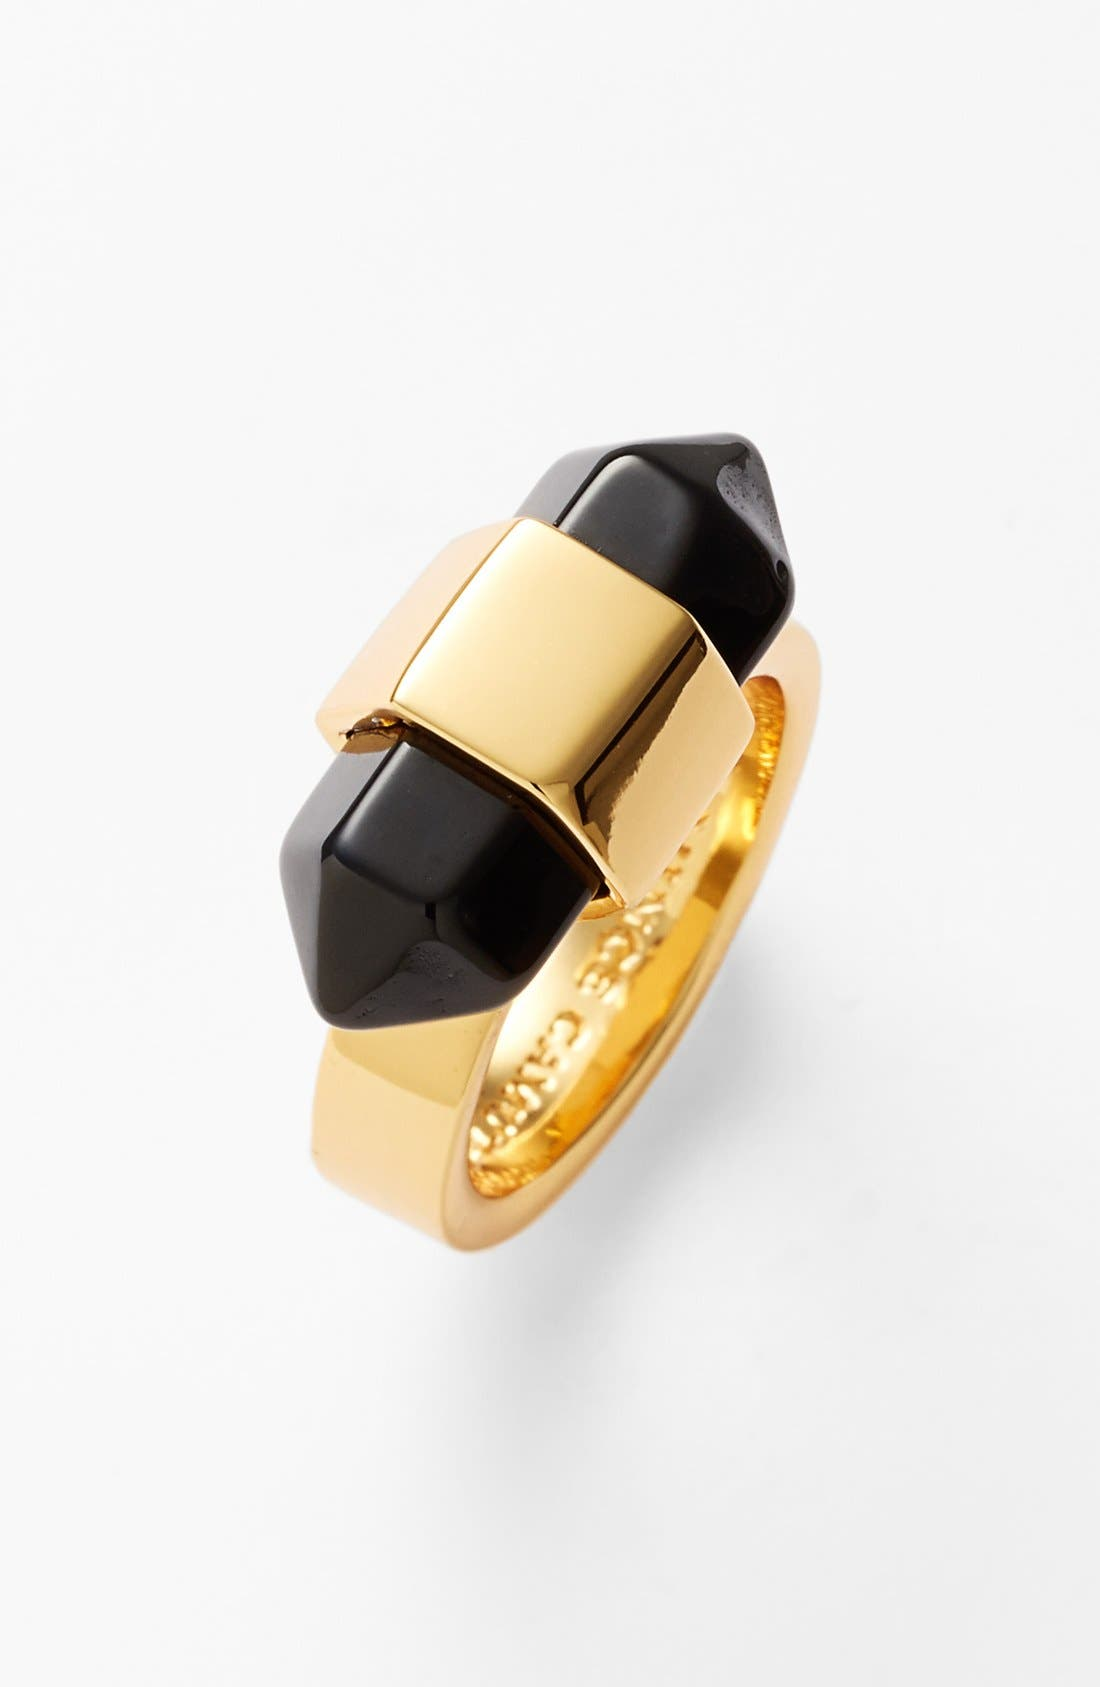 Main Image - Vince Camuto 'Bullet Proof' Stone Ring